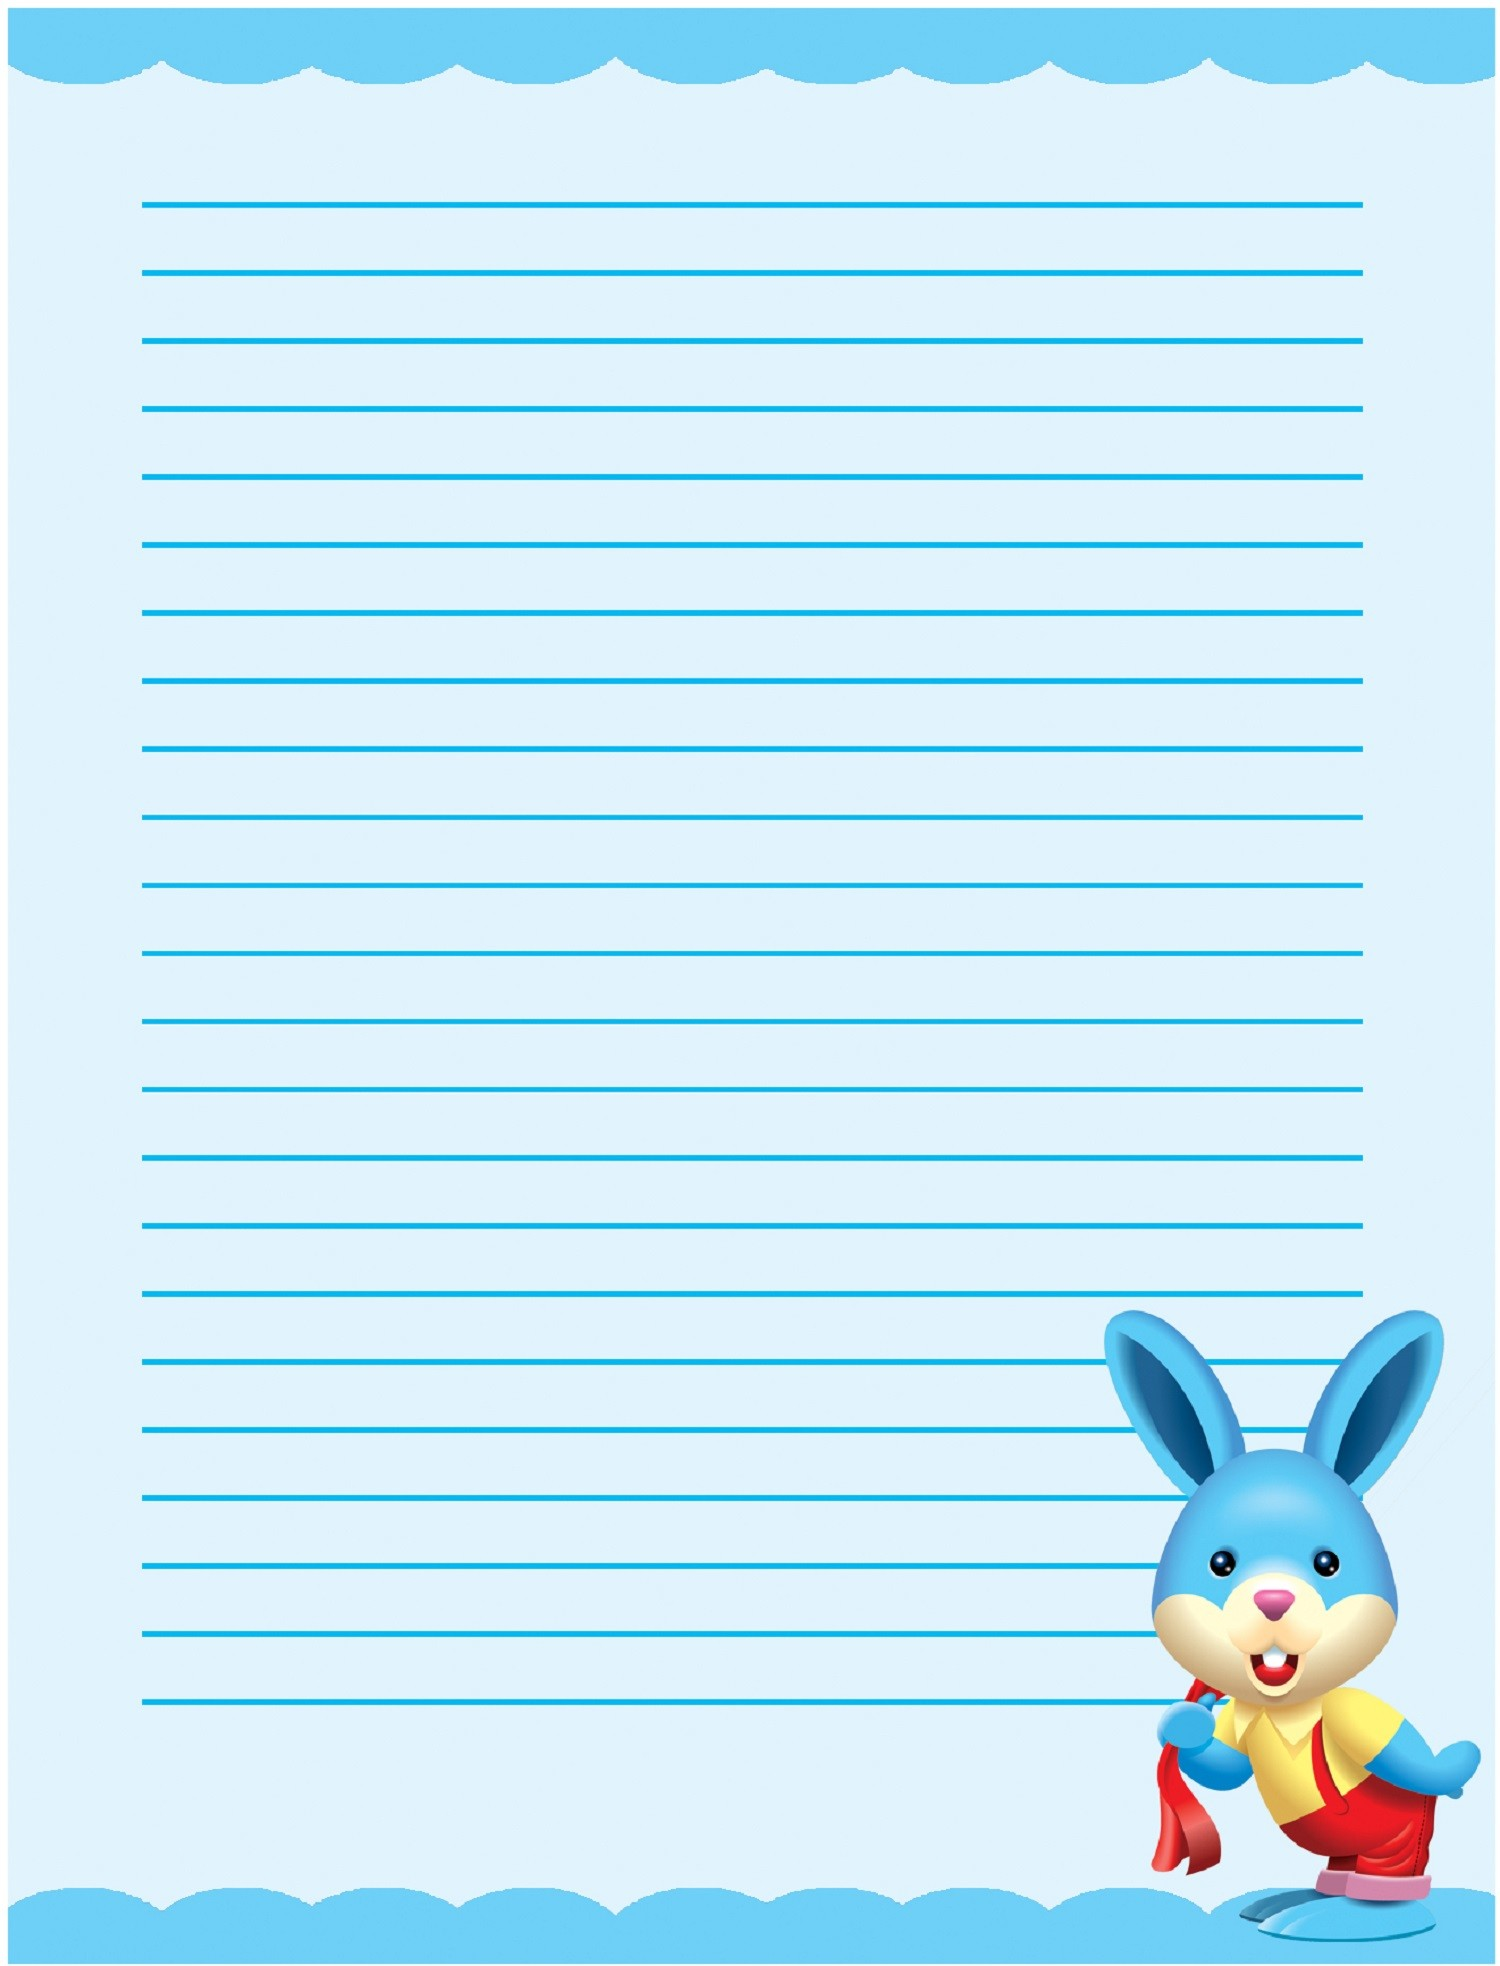 lined stationery From invitations to postcards to greeting cards zazzle has all the lined writing cards you need shop our amazing selection right now.